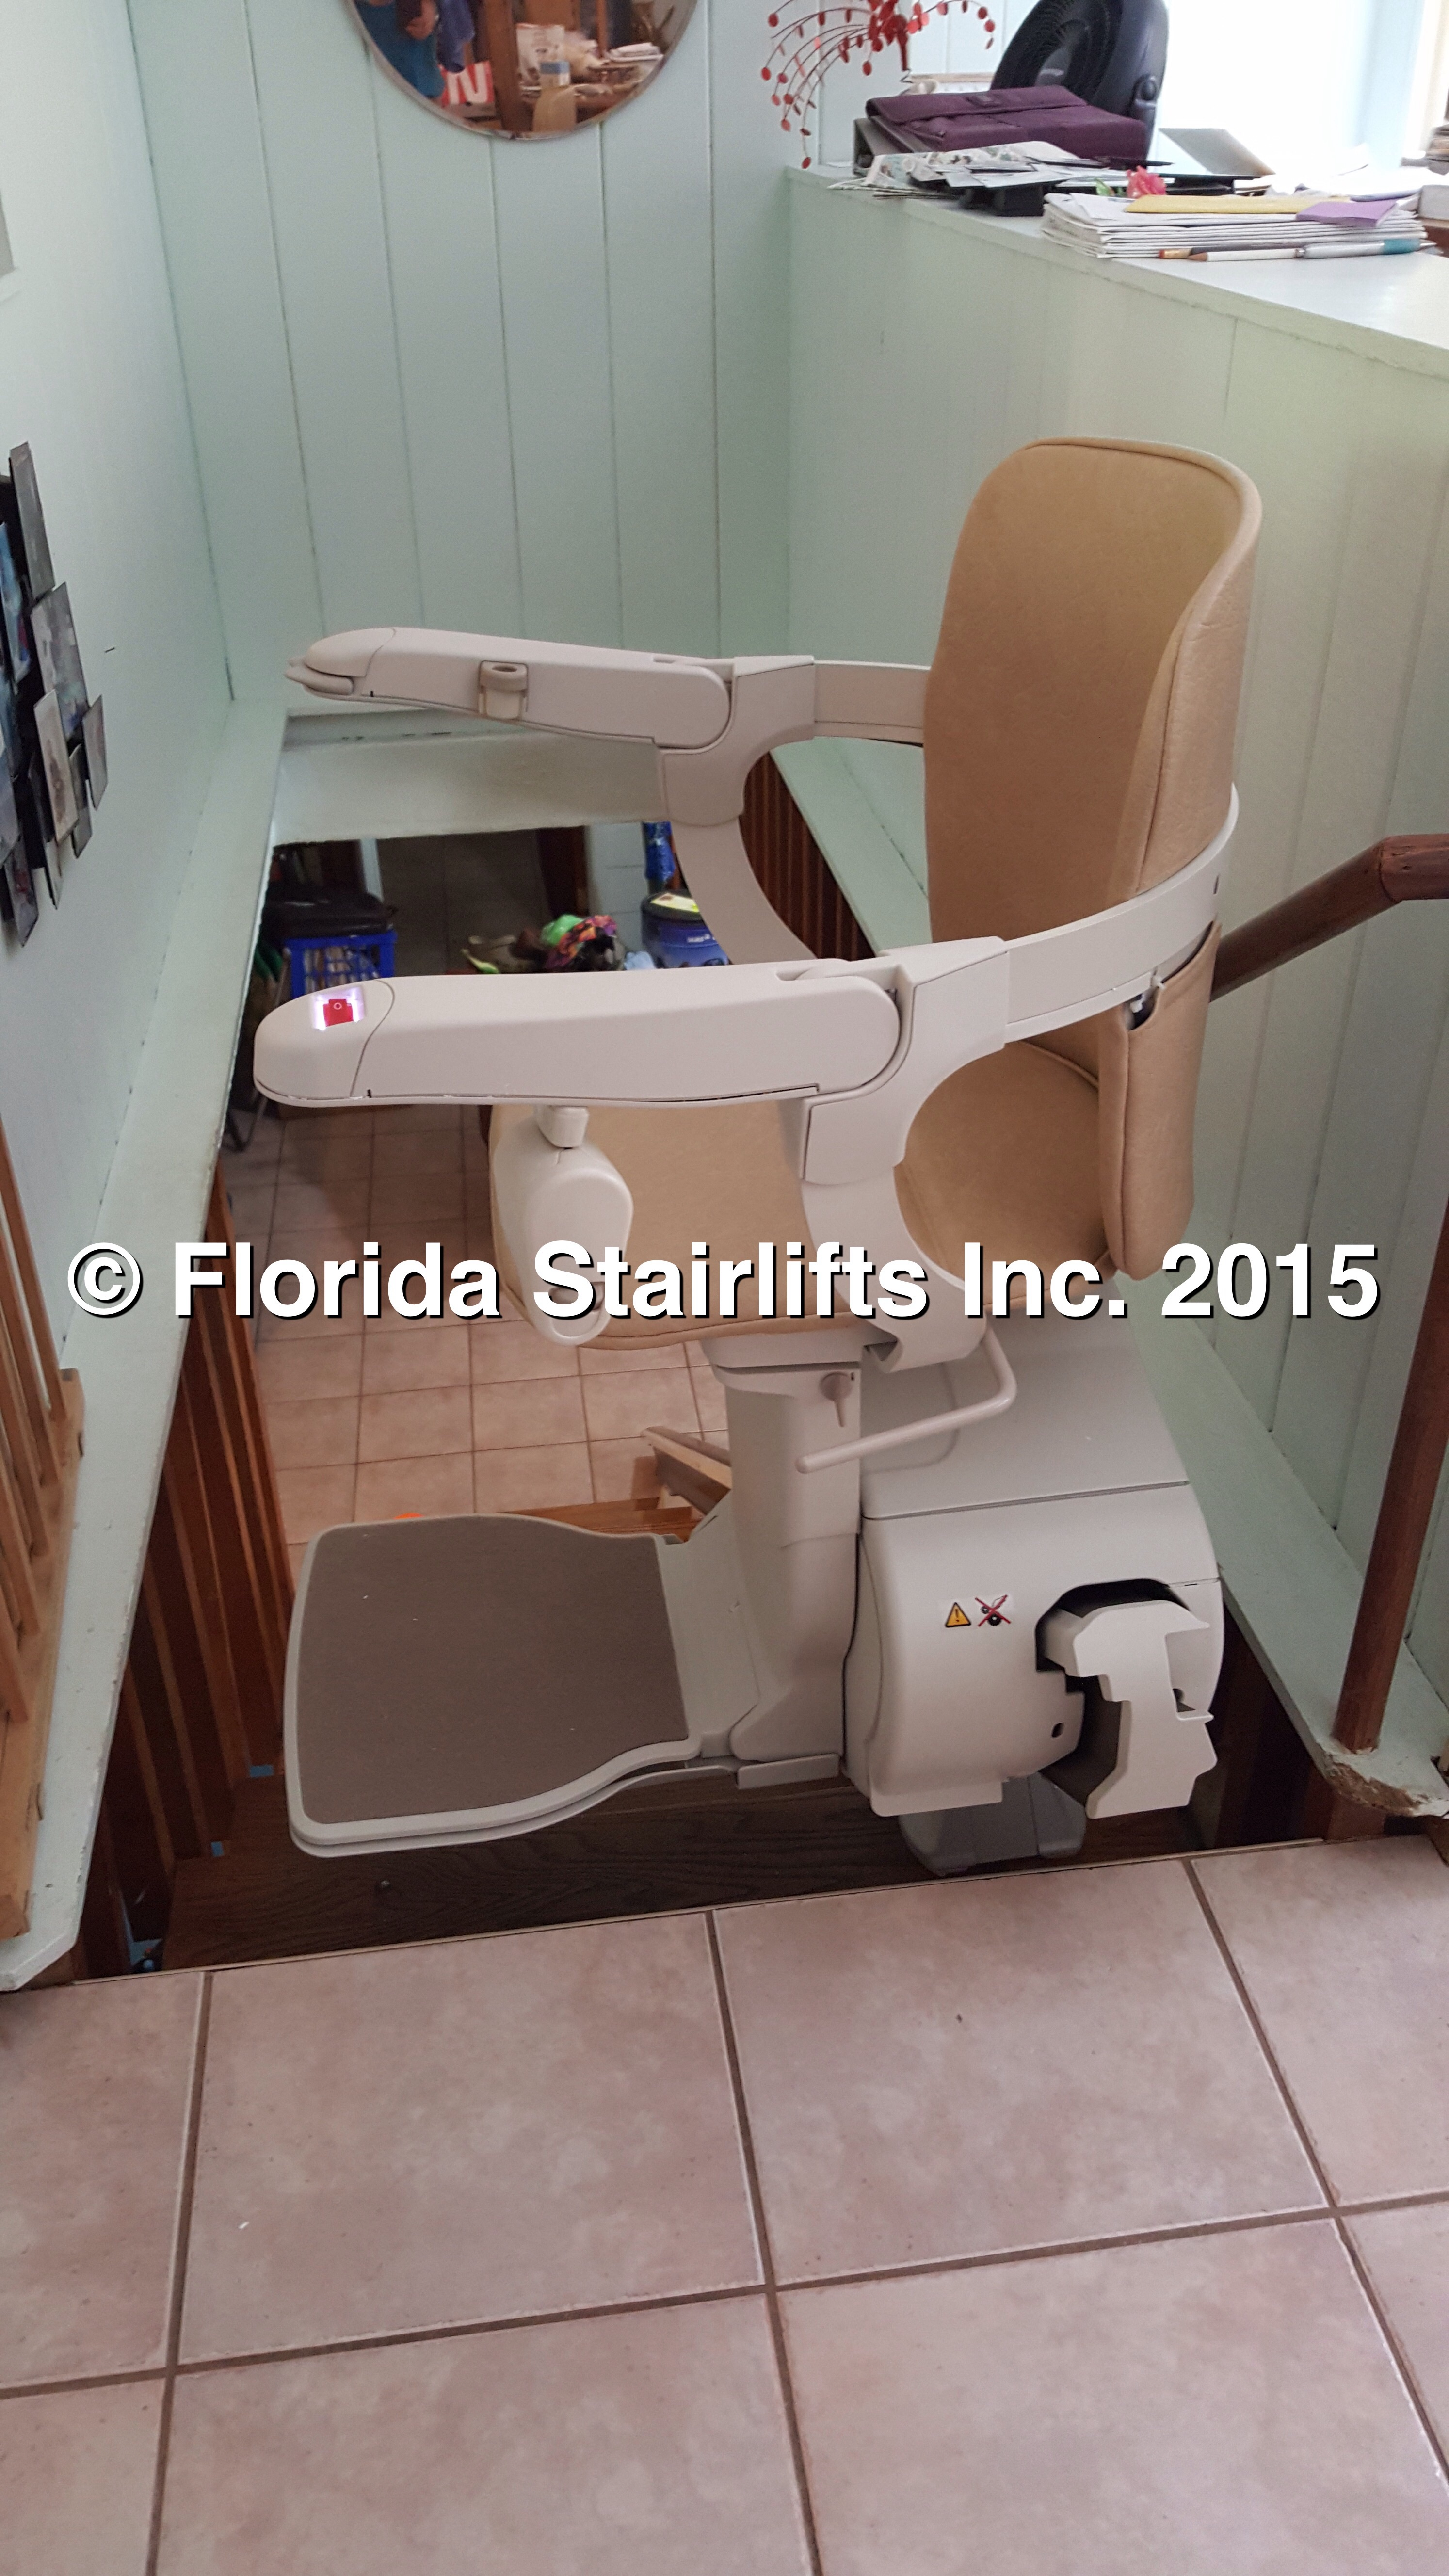 600 Model Stannah Stairlift ready to ride